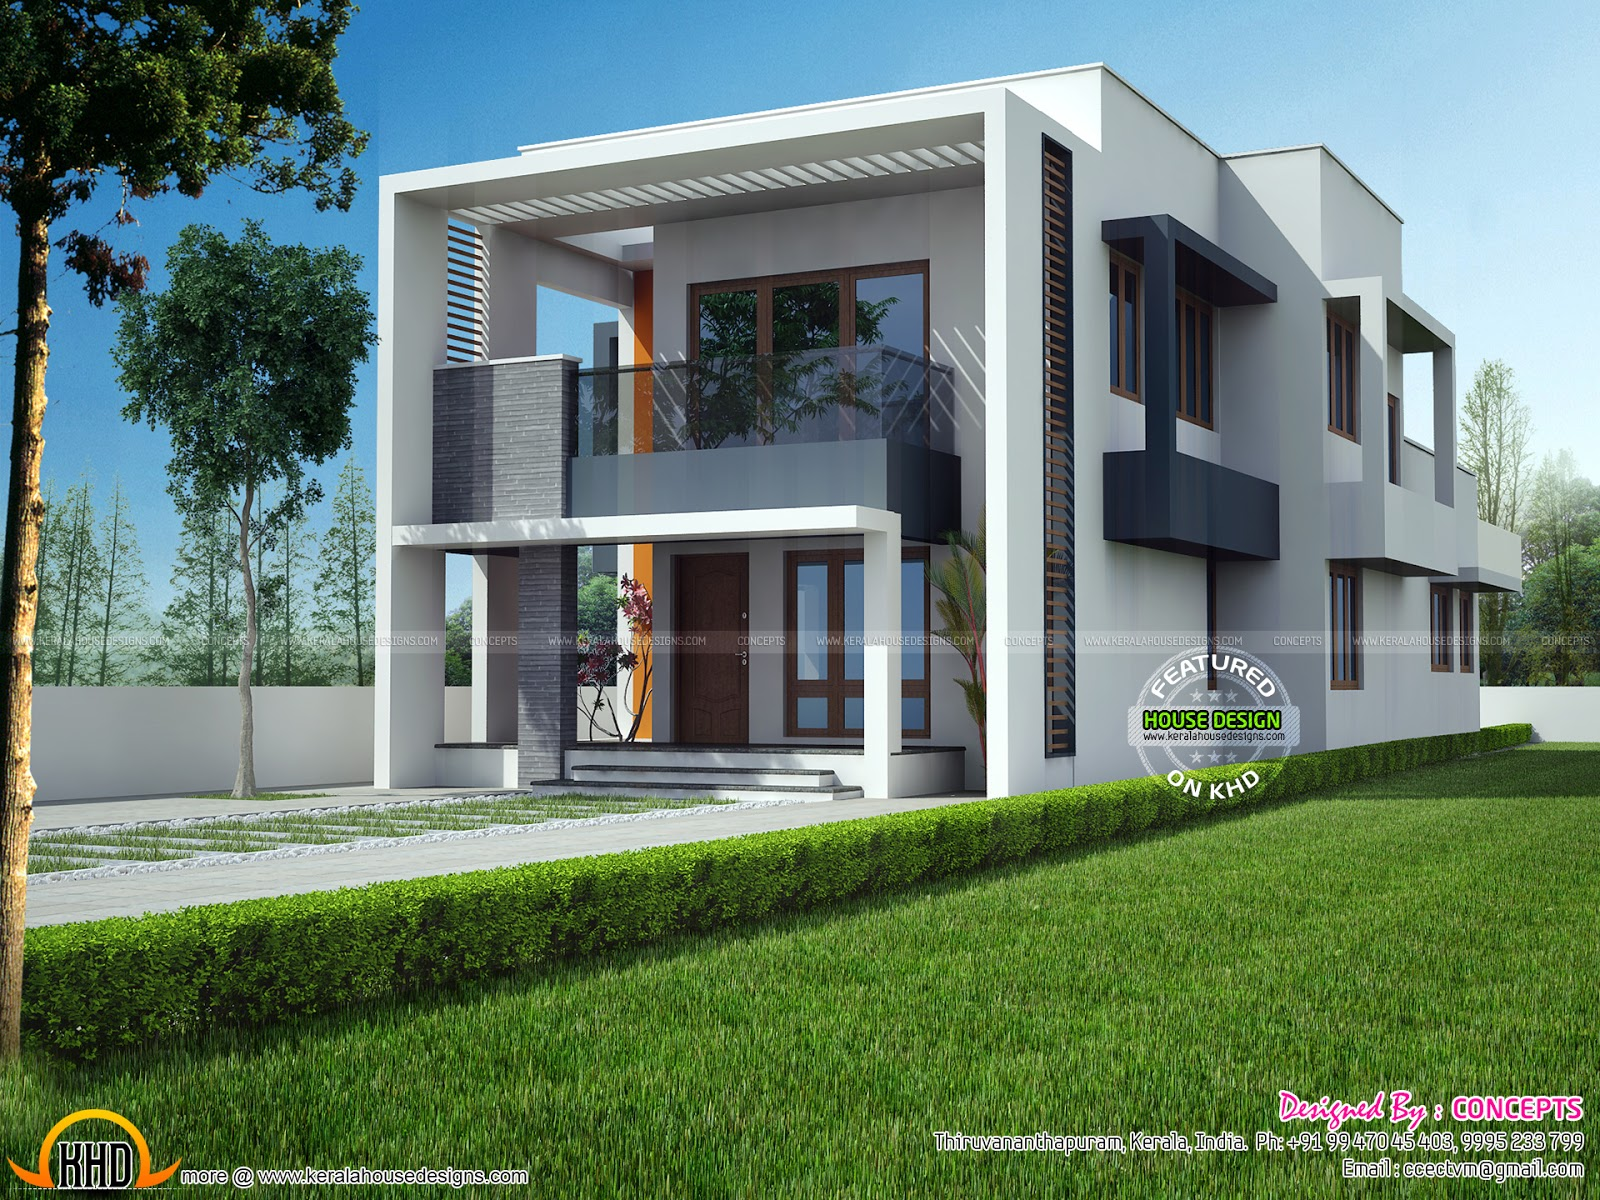 Modern house view and plan keralahousedesigns for Modern house view